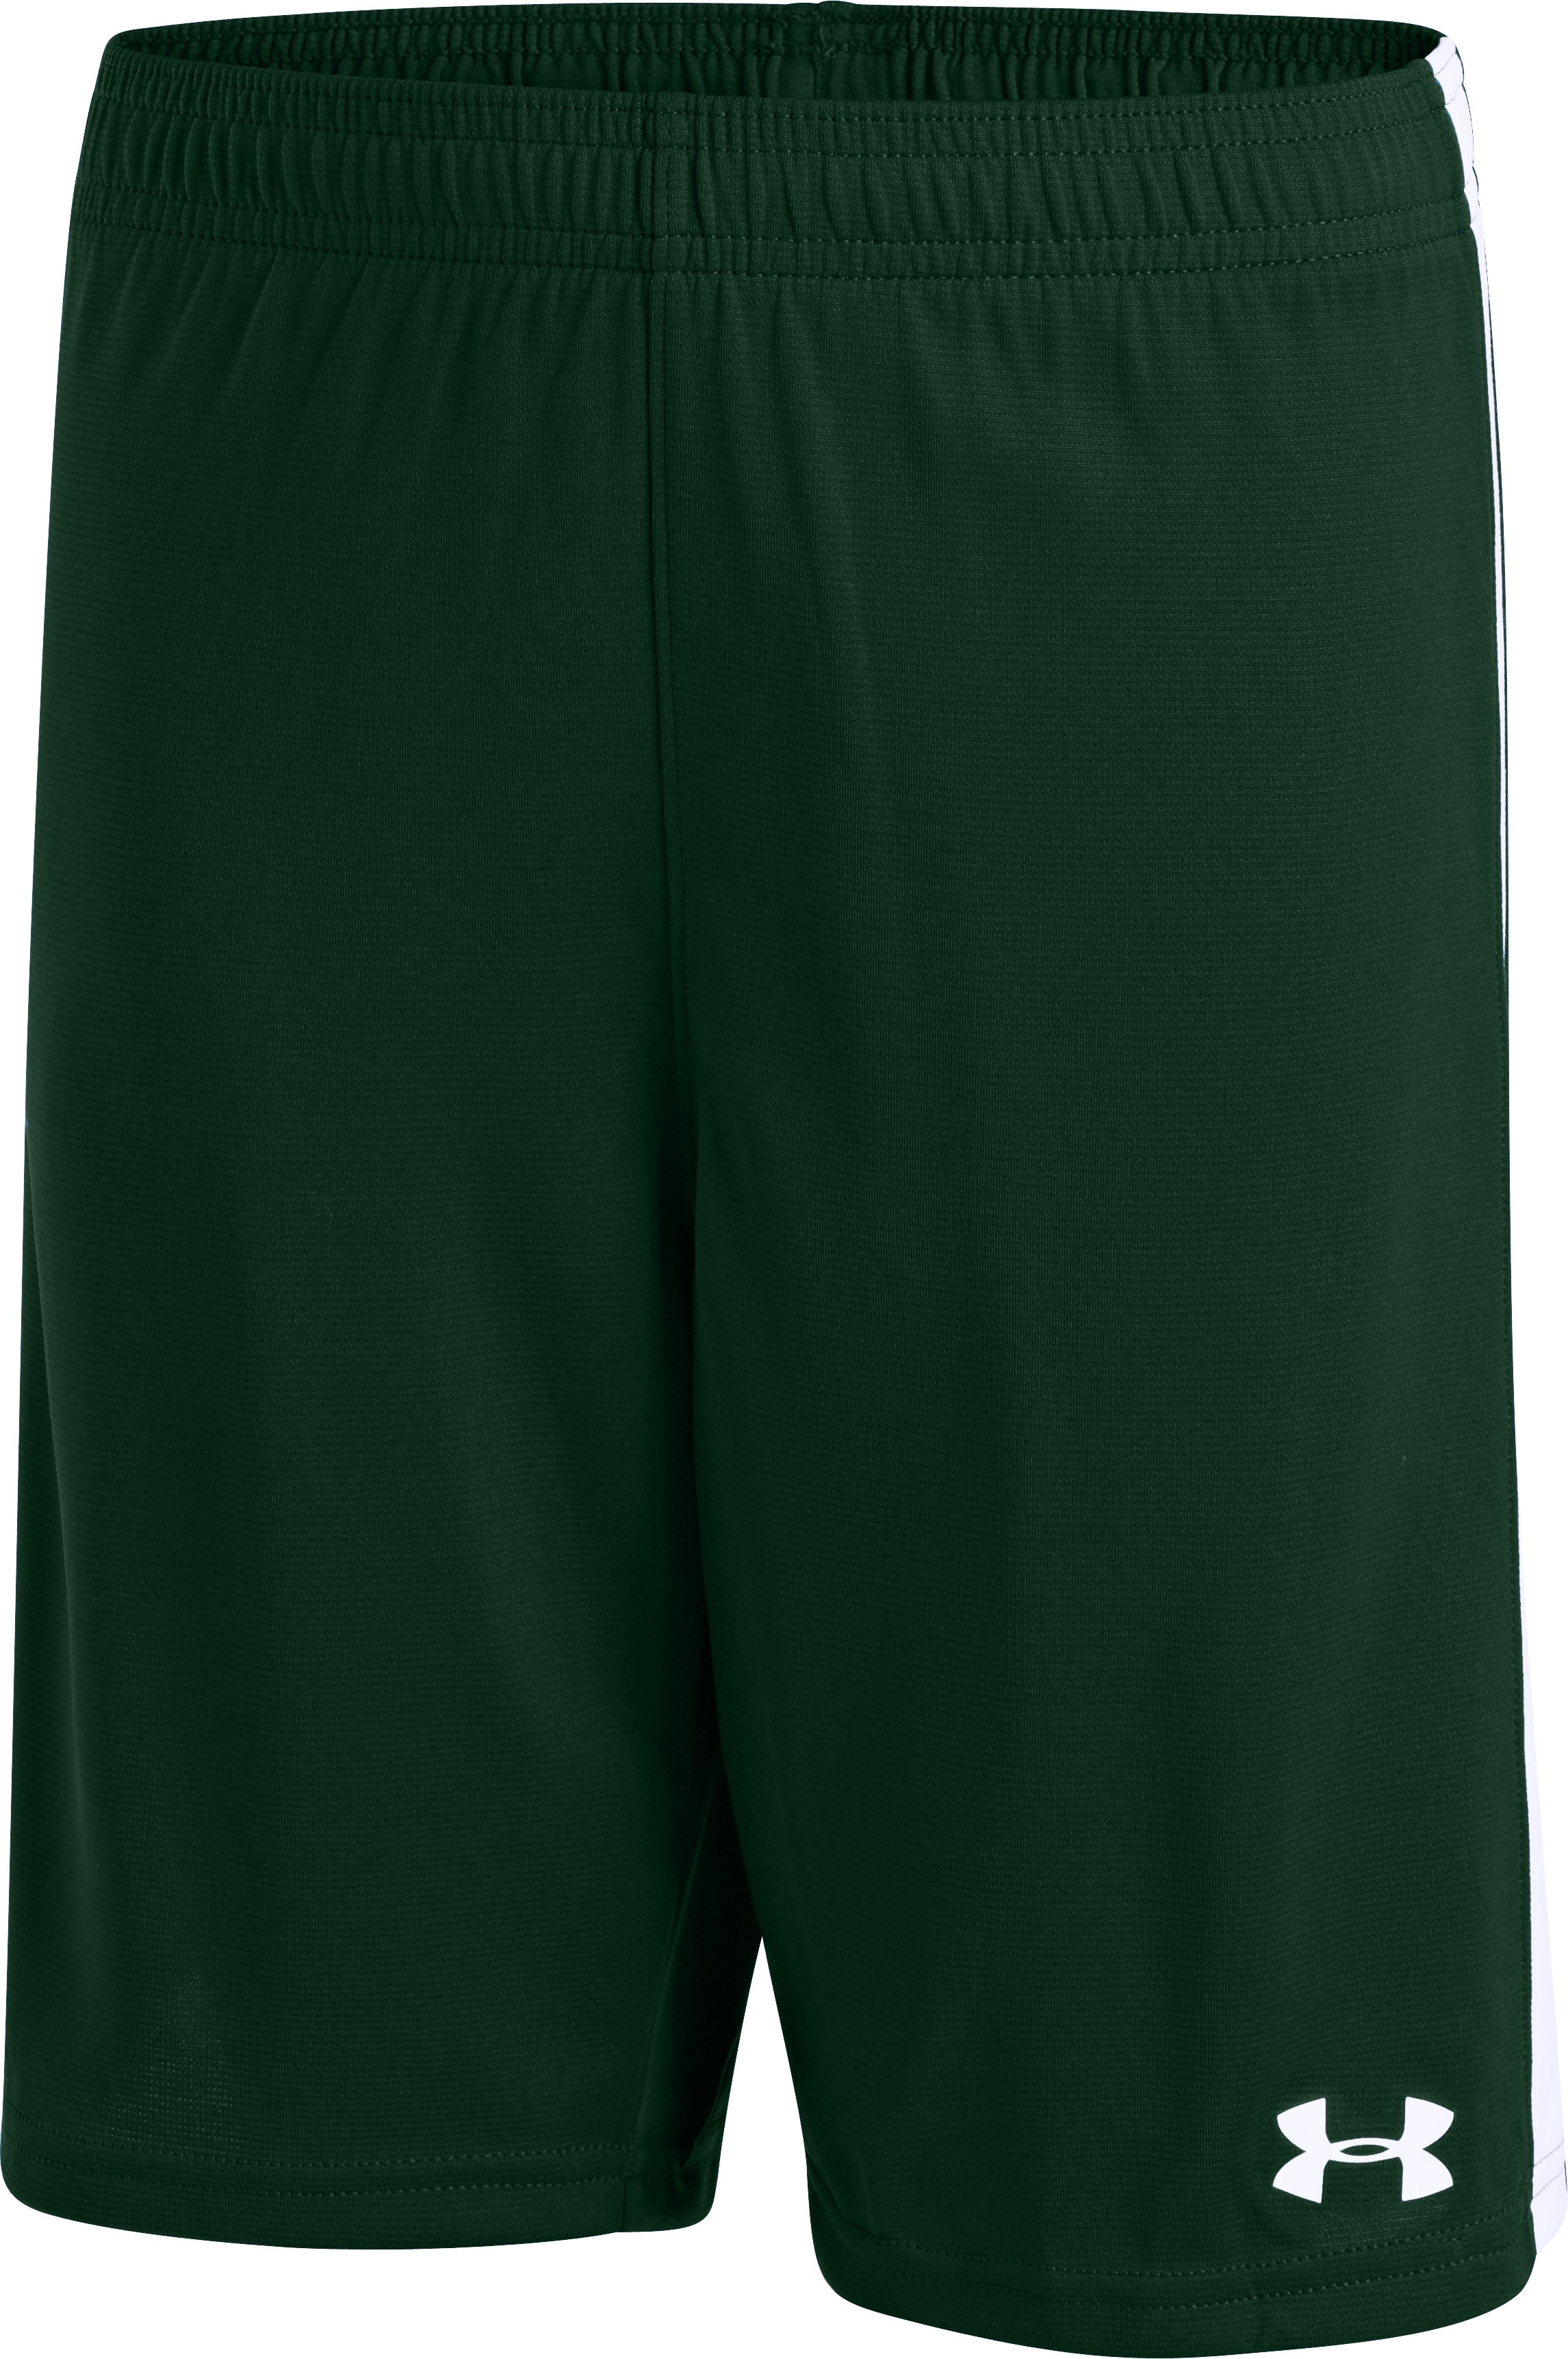 Boys' UA Classic Shorts, Forest Green